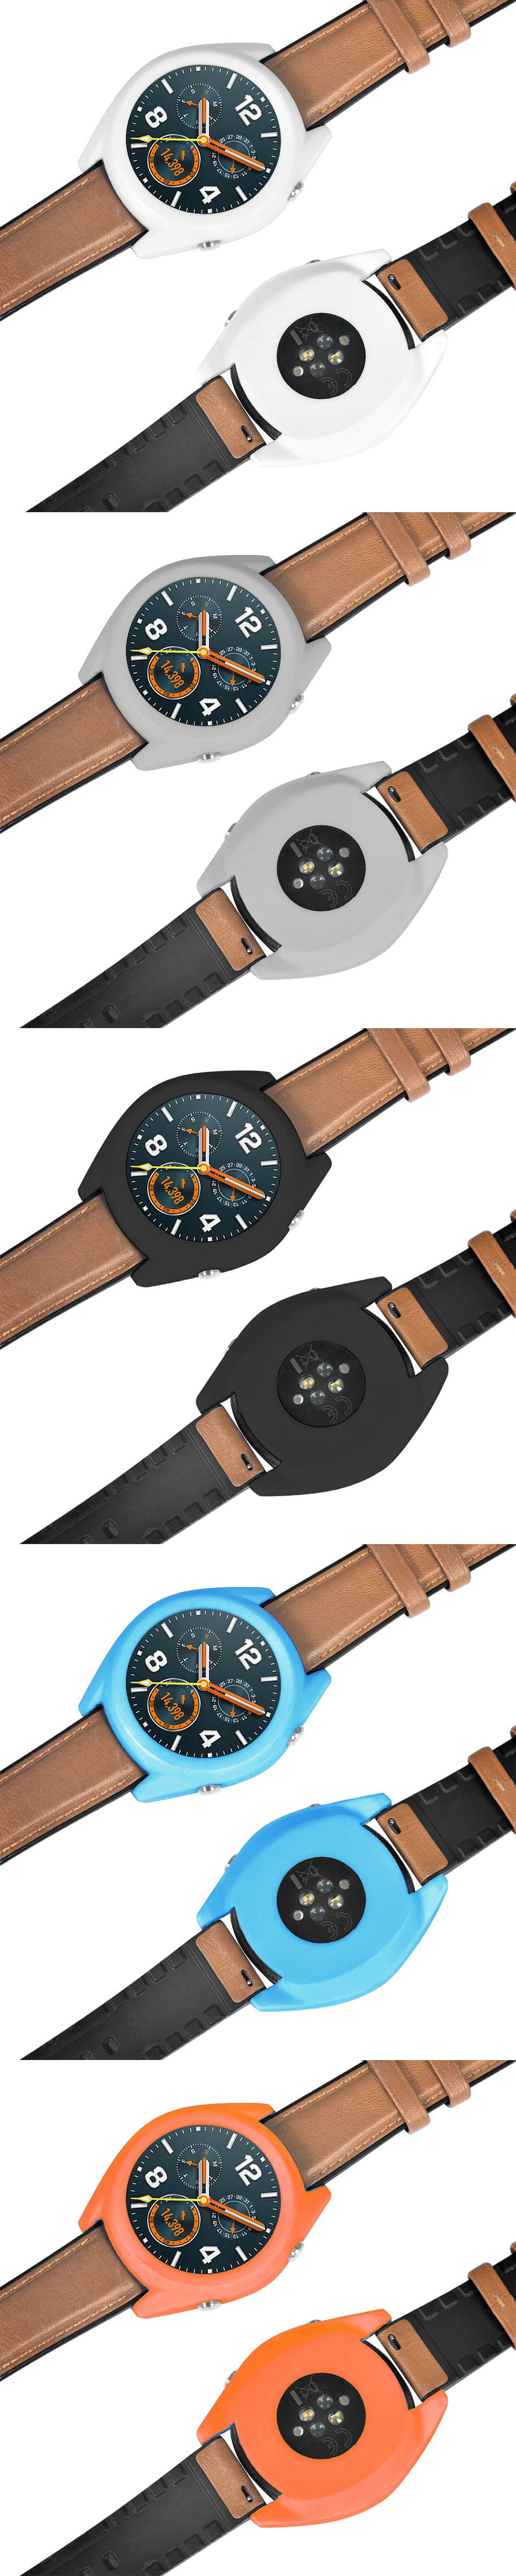 Silicone Pure Color Watch Case Cover Watch Cover Protector for Huawei Watch GT / GT Active